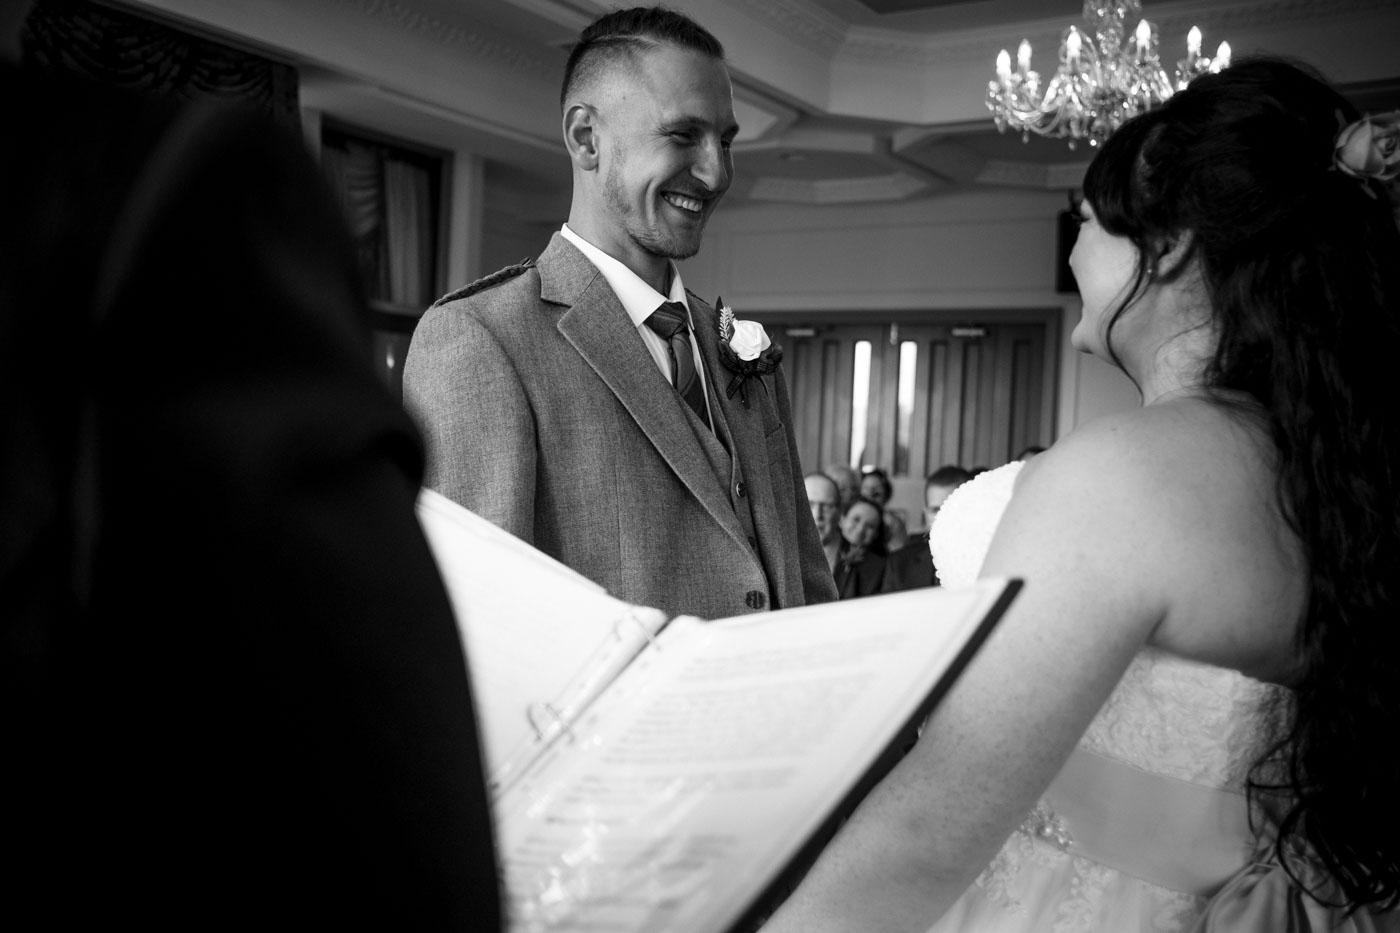 groom smiling at his bride in the wedding ceremony